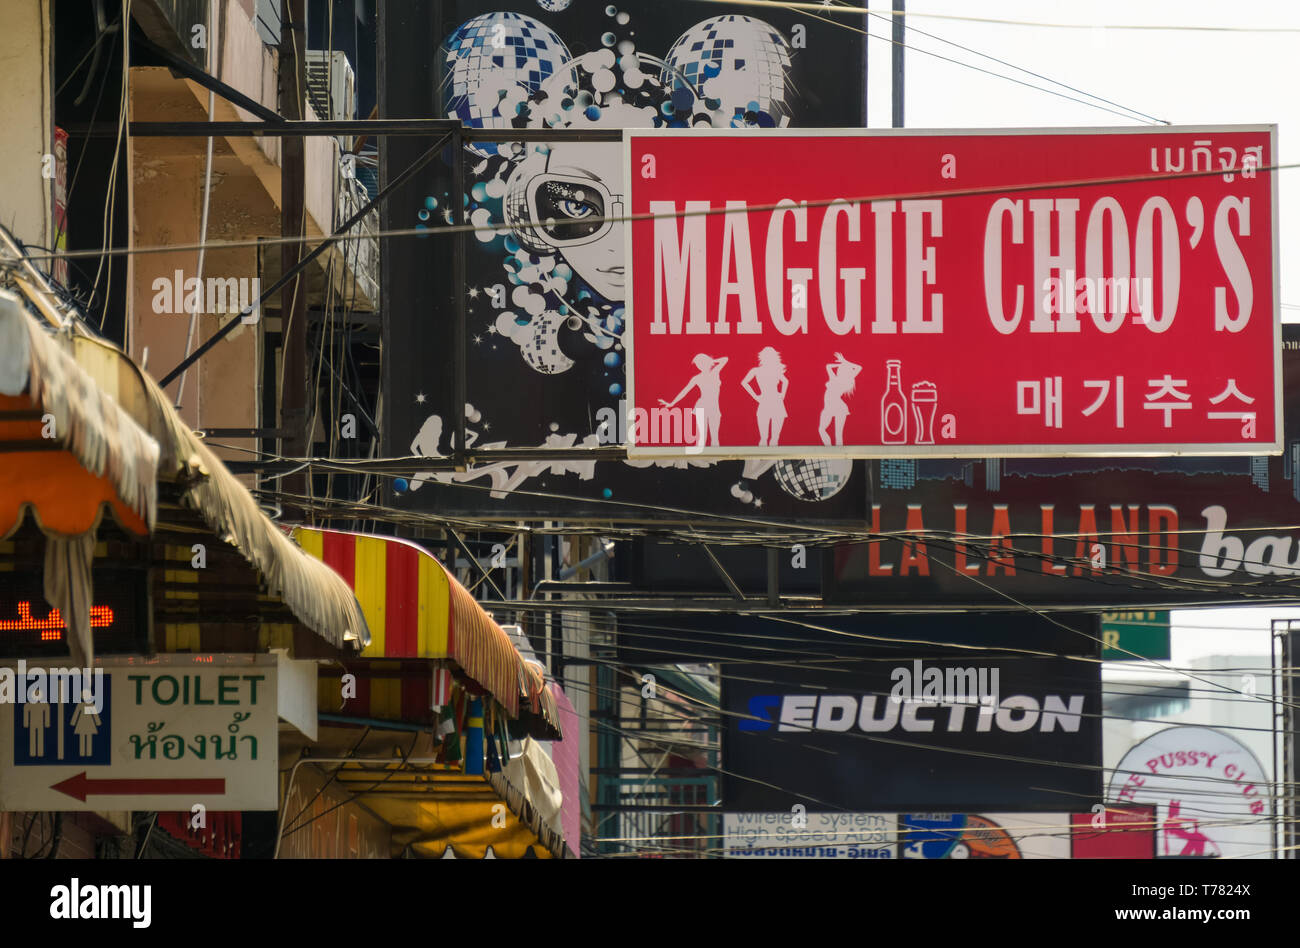 PATTAYA,THAILAND - APRIL 11,2019:Soi 6 This is the sign of Maggie